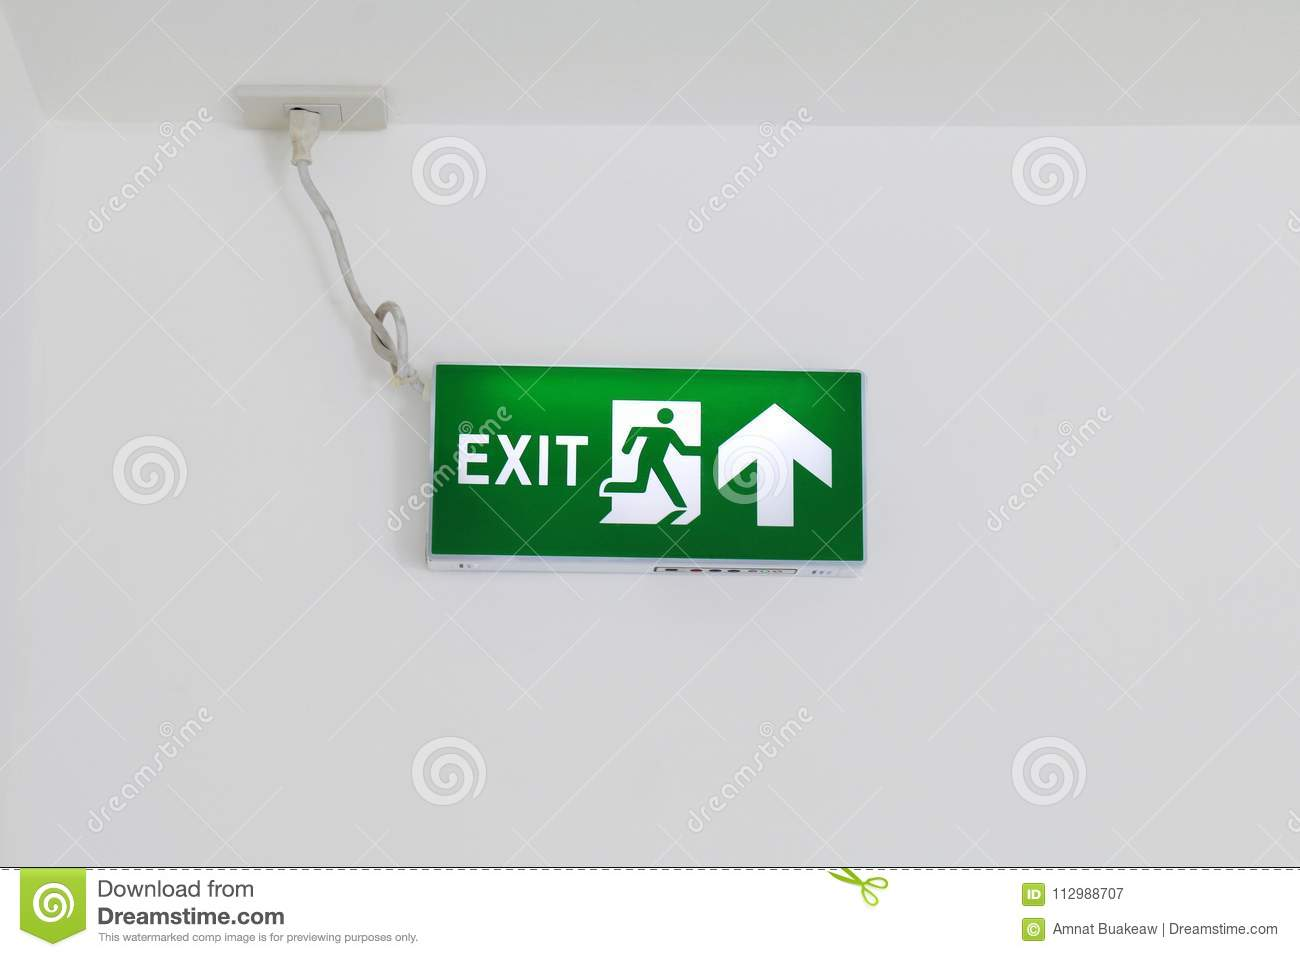 Fire Exit Signs, Fire escape green, Arrow Signs on white wall, Signs Emergency, Light box signs green, Safety first signs